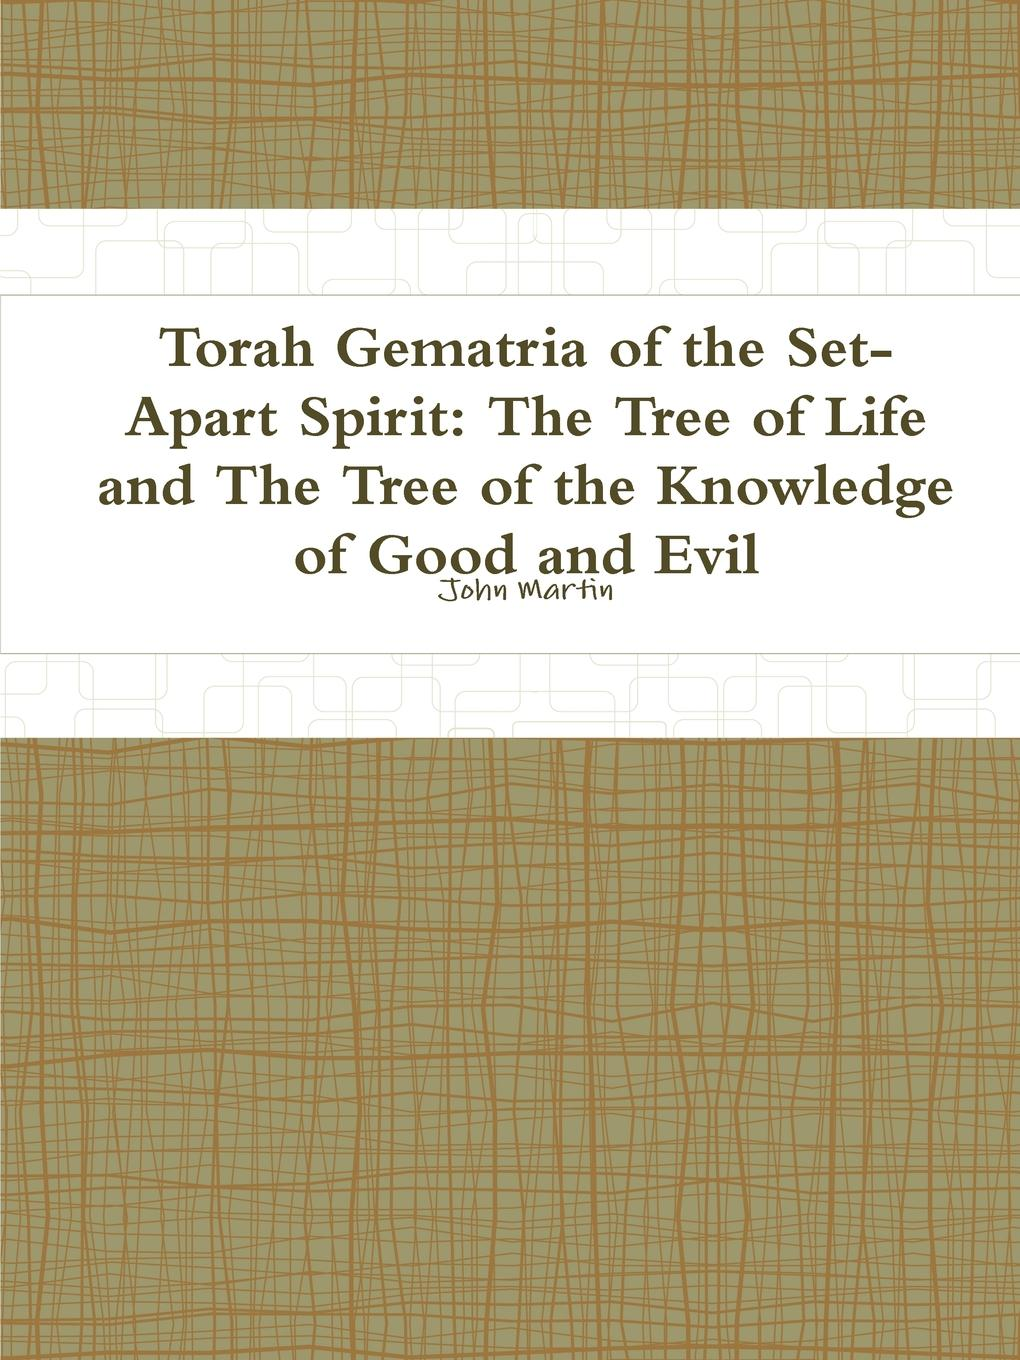 John Martin Torah Gematria of the Set-Apart Spirit. The Tree Life and Knowledge Good Evil